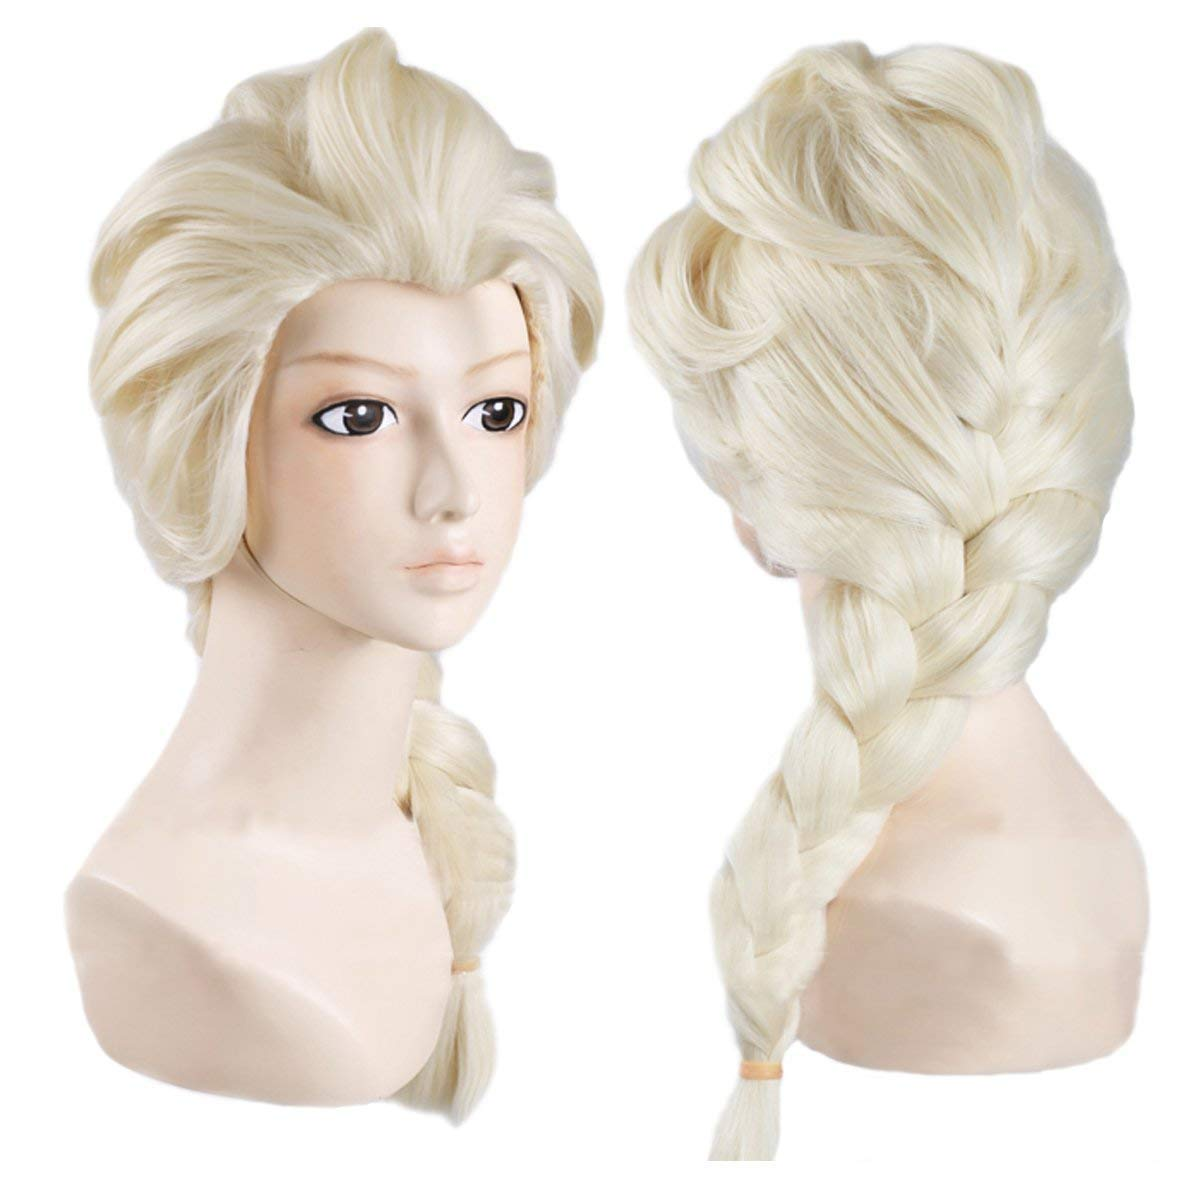 Anime Cosplay Wig for Frozen Snow Queen Elsa, Disney Movie Costume Play, Light Creamy-white French Braid Wig & Mesh Wig Cap, for Daily/Party/Halloween Wig; WIG019B